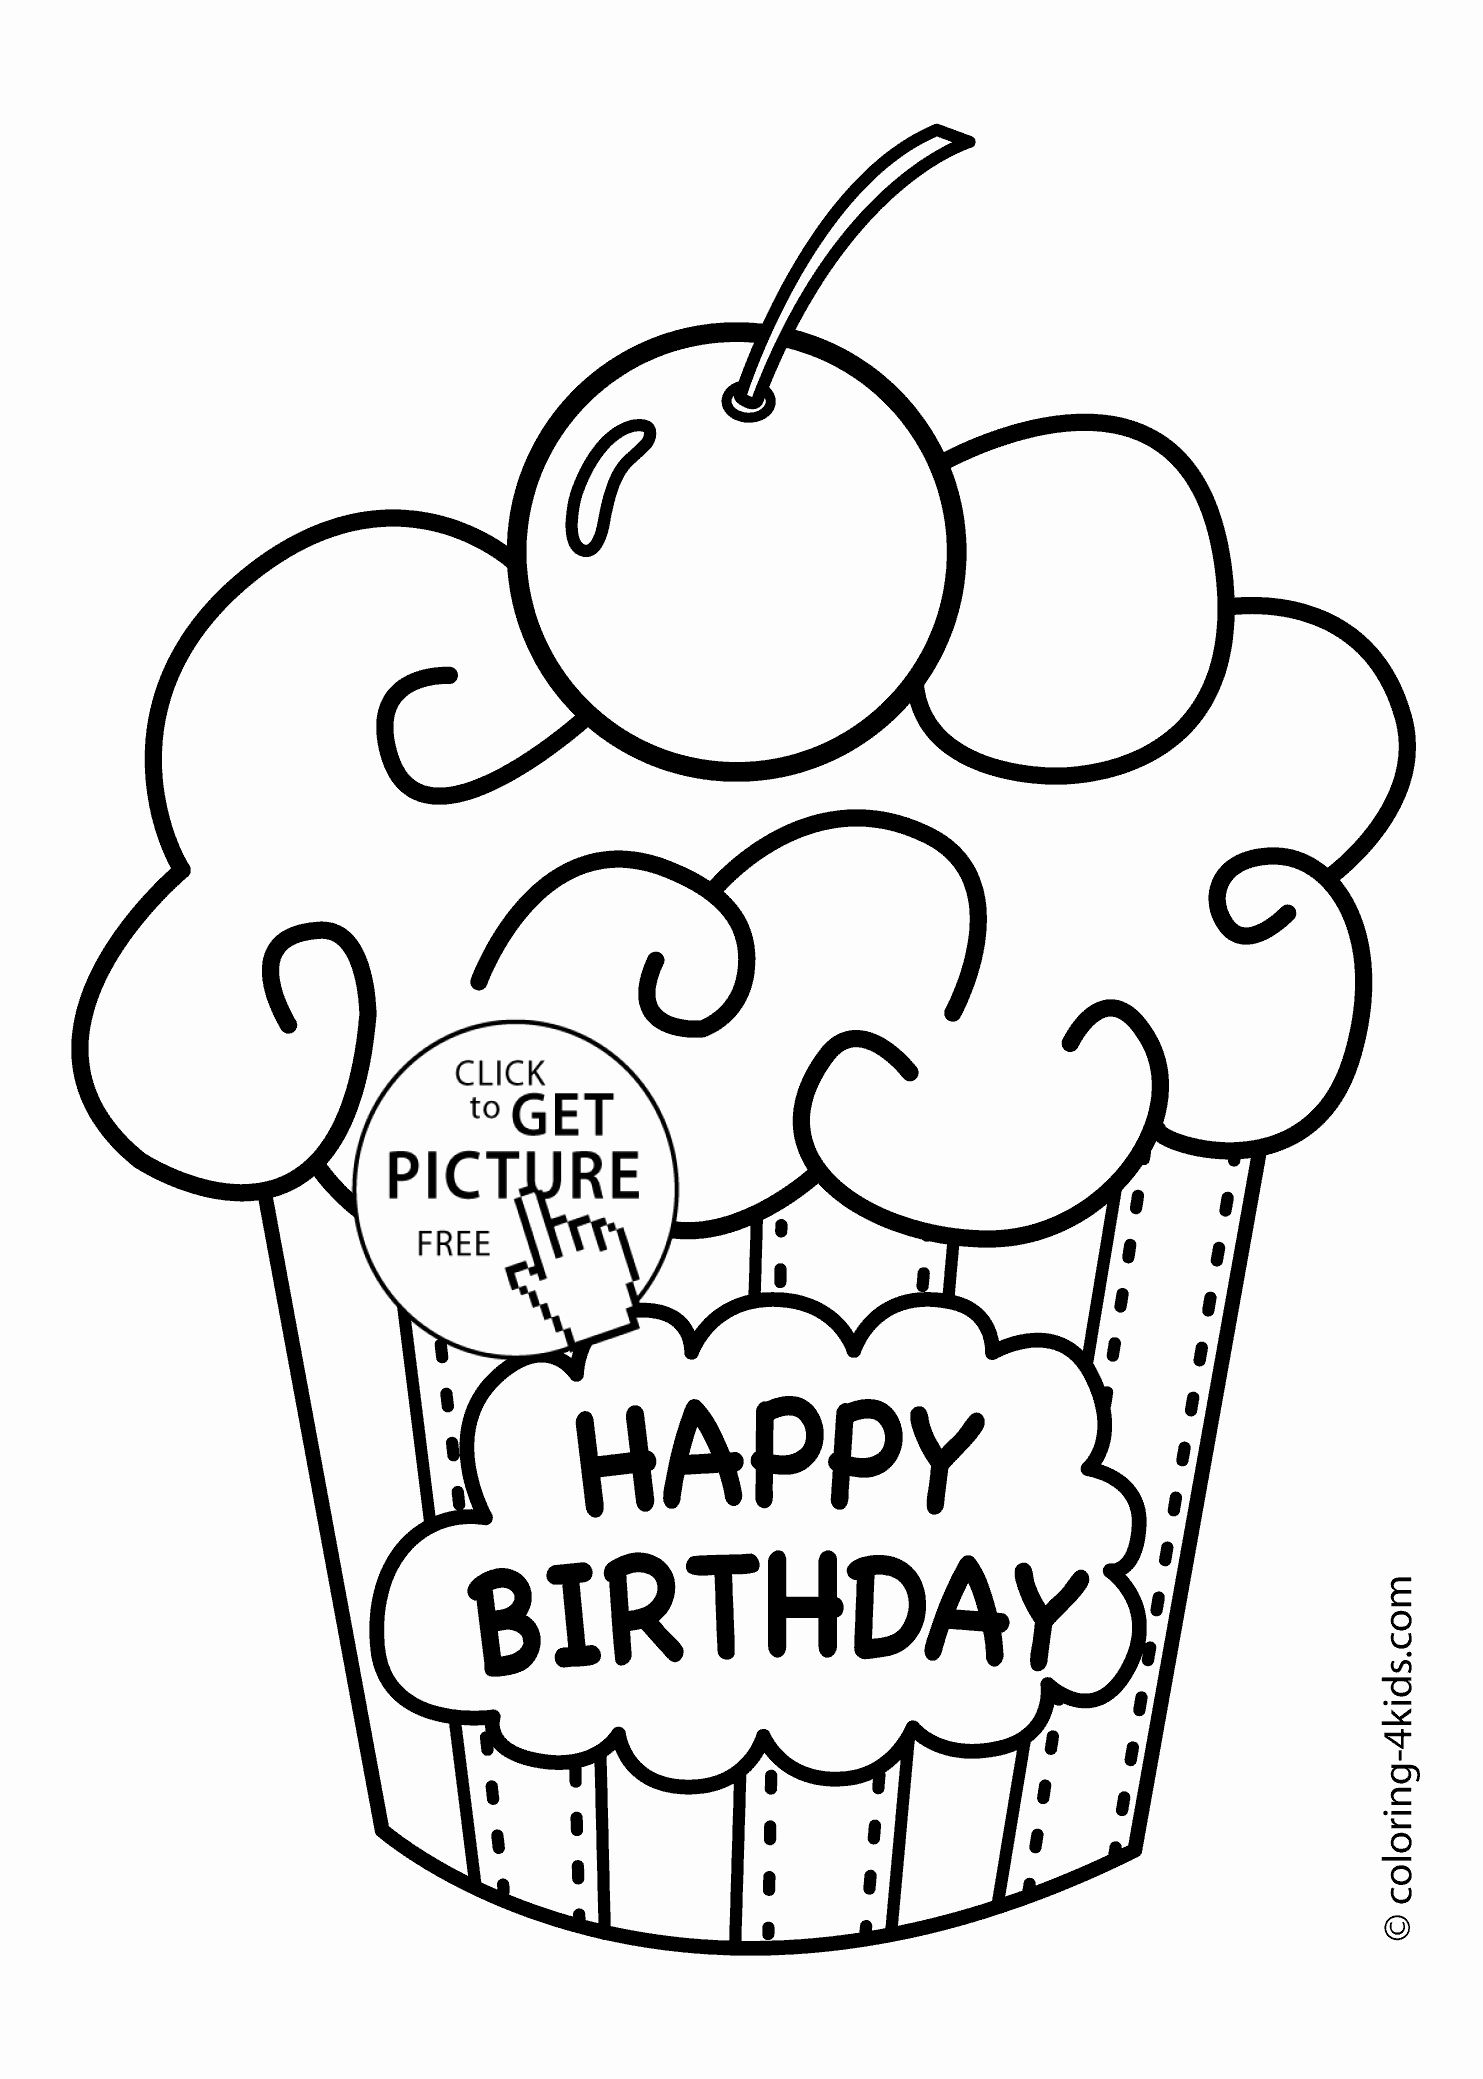 Vegetable Coloring Pages To Print Beautiful Happy Birthday Print Out Coloring Page Happy Birthday Coloring Pages Coloring Birthday Cards Cupcake Coloring Pages